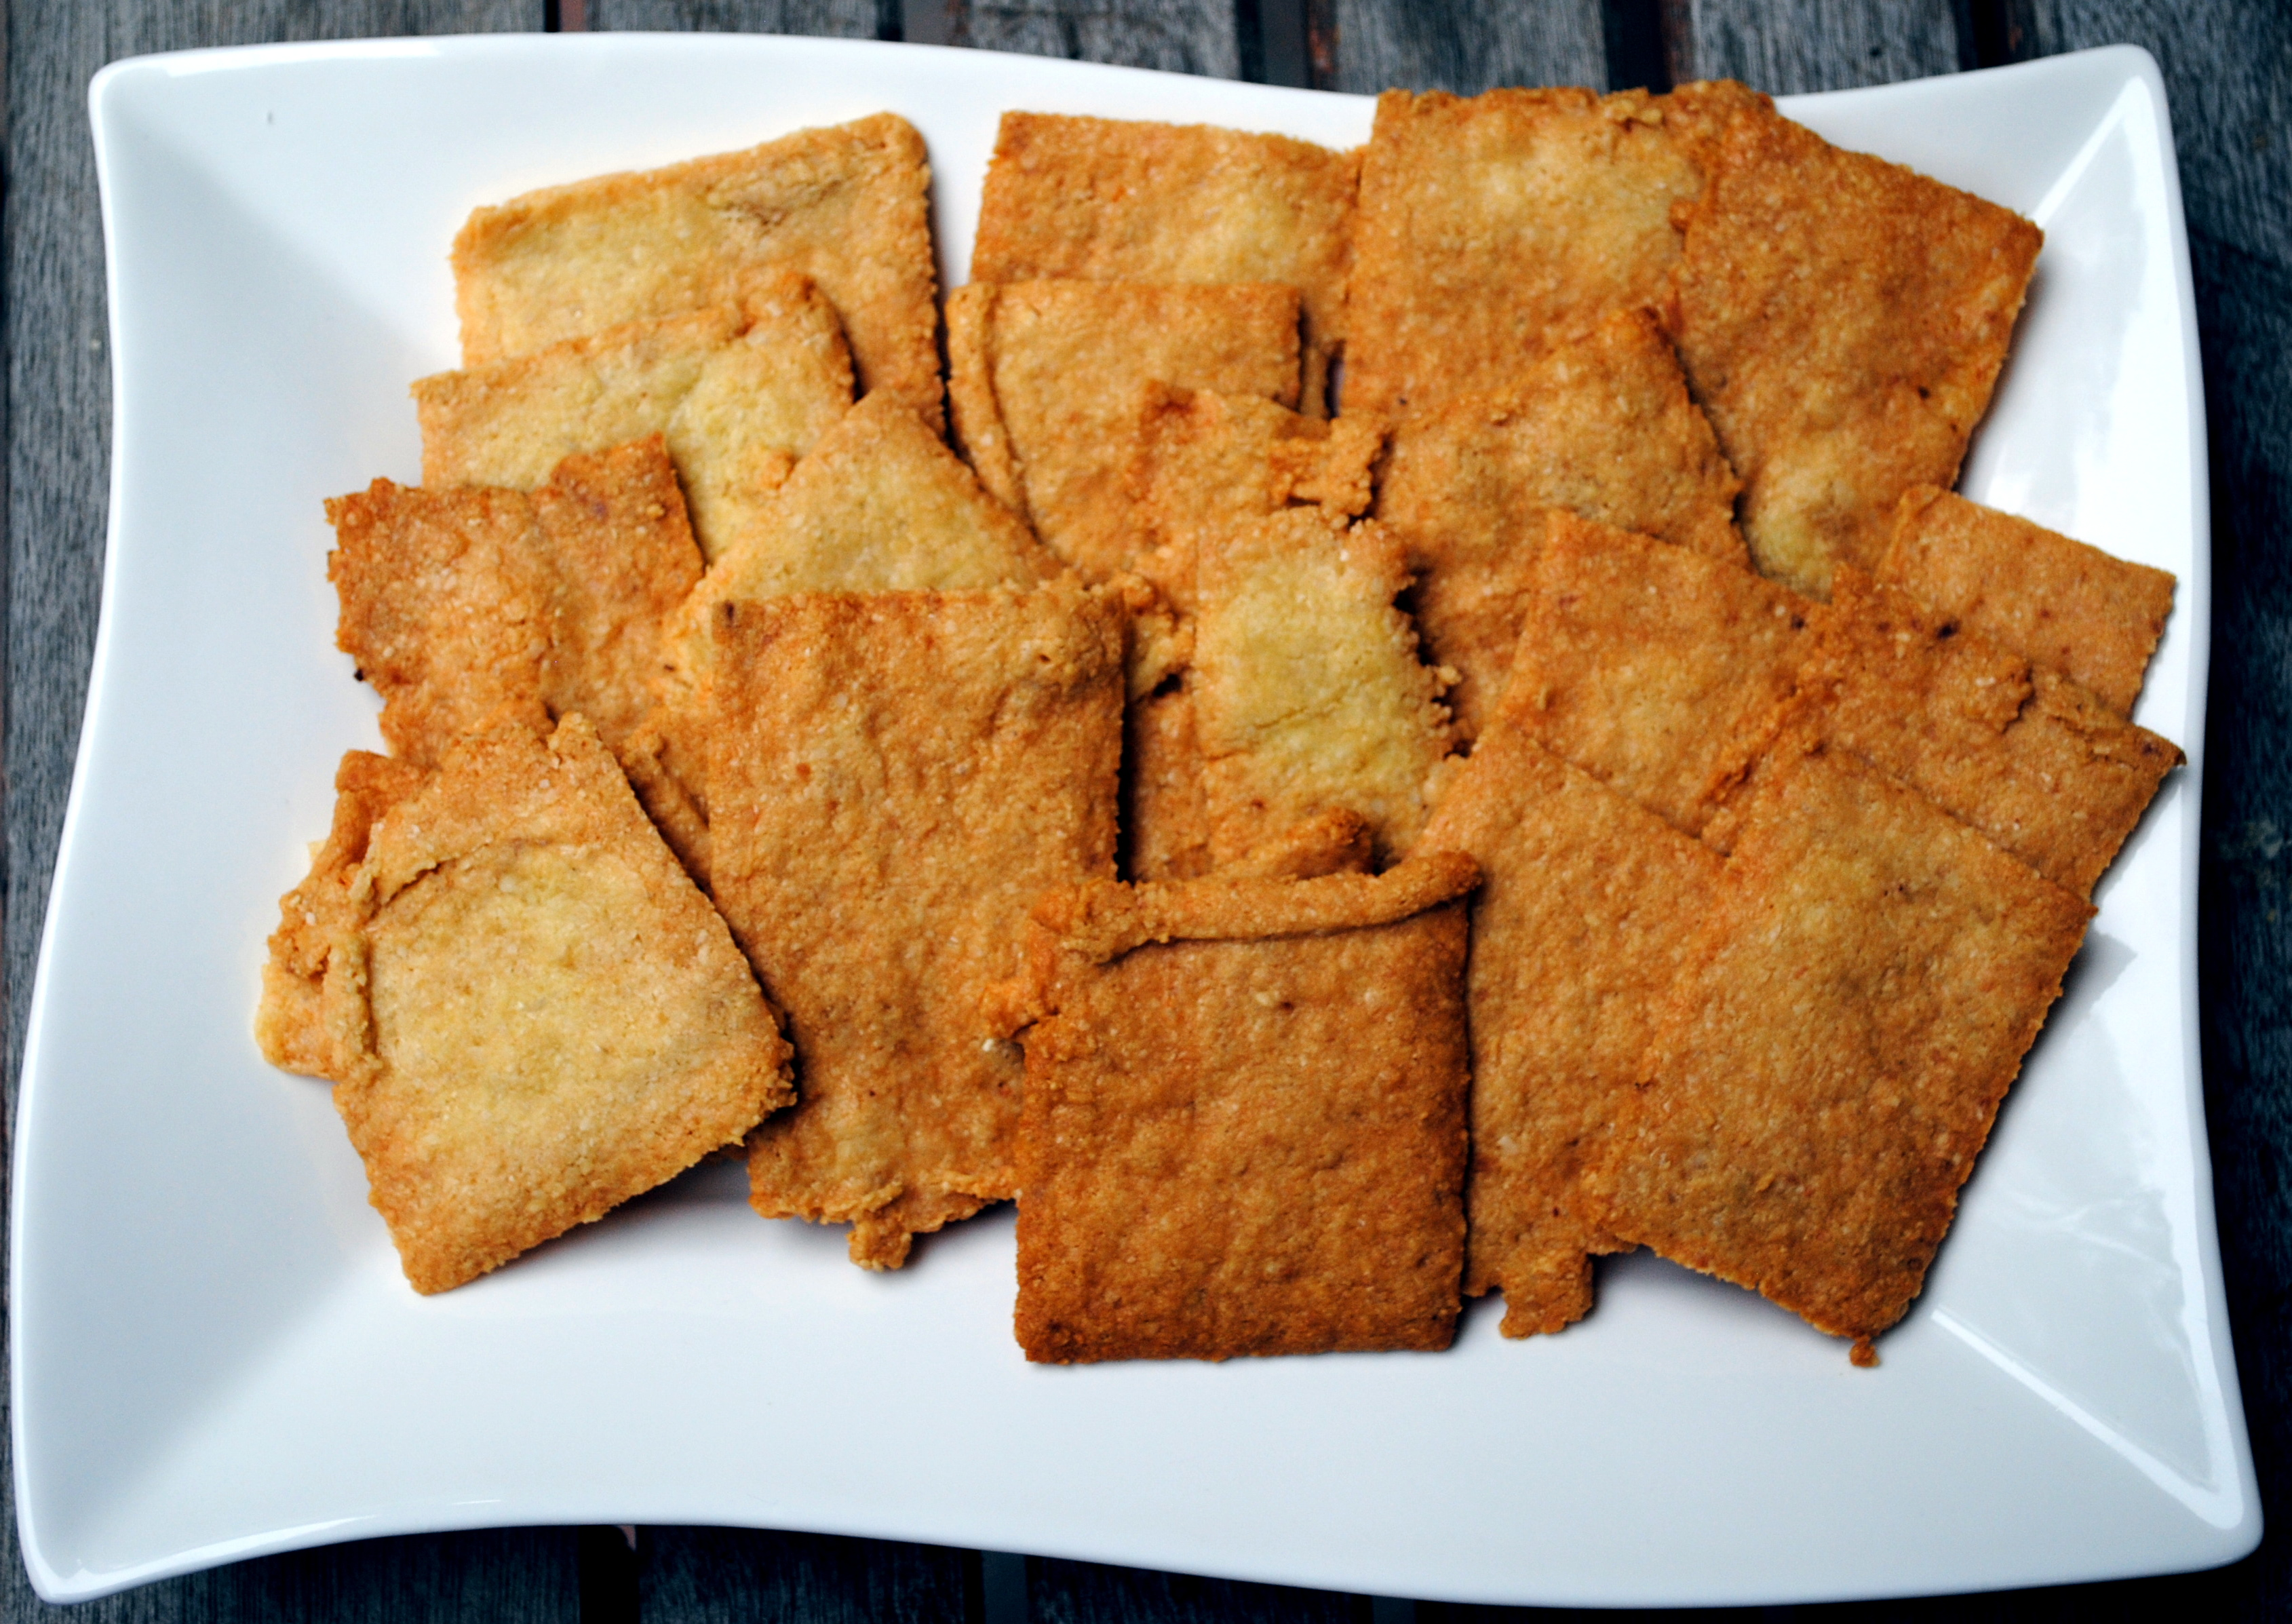 Cheddar Cheese Crackers (Gluten Free!) | Clare Cooks!